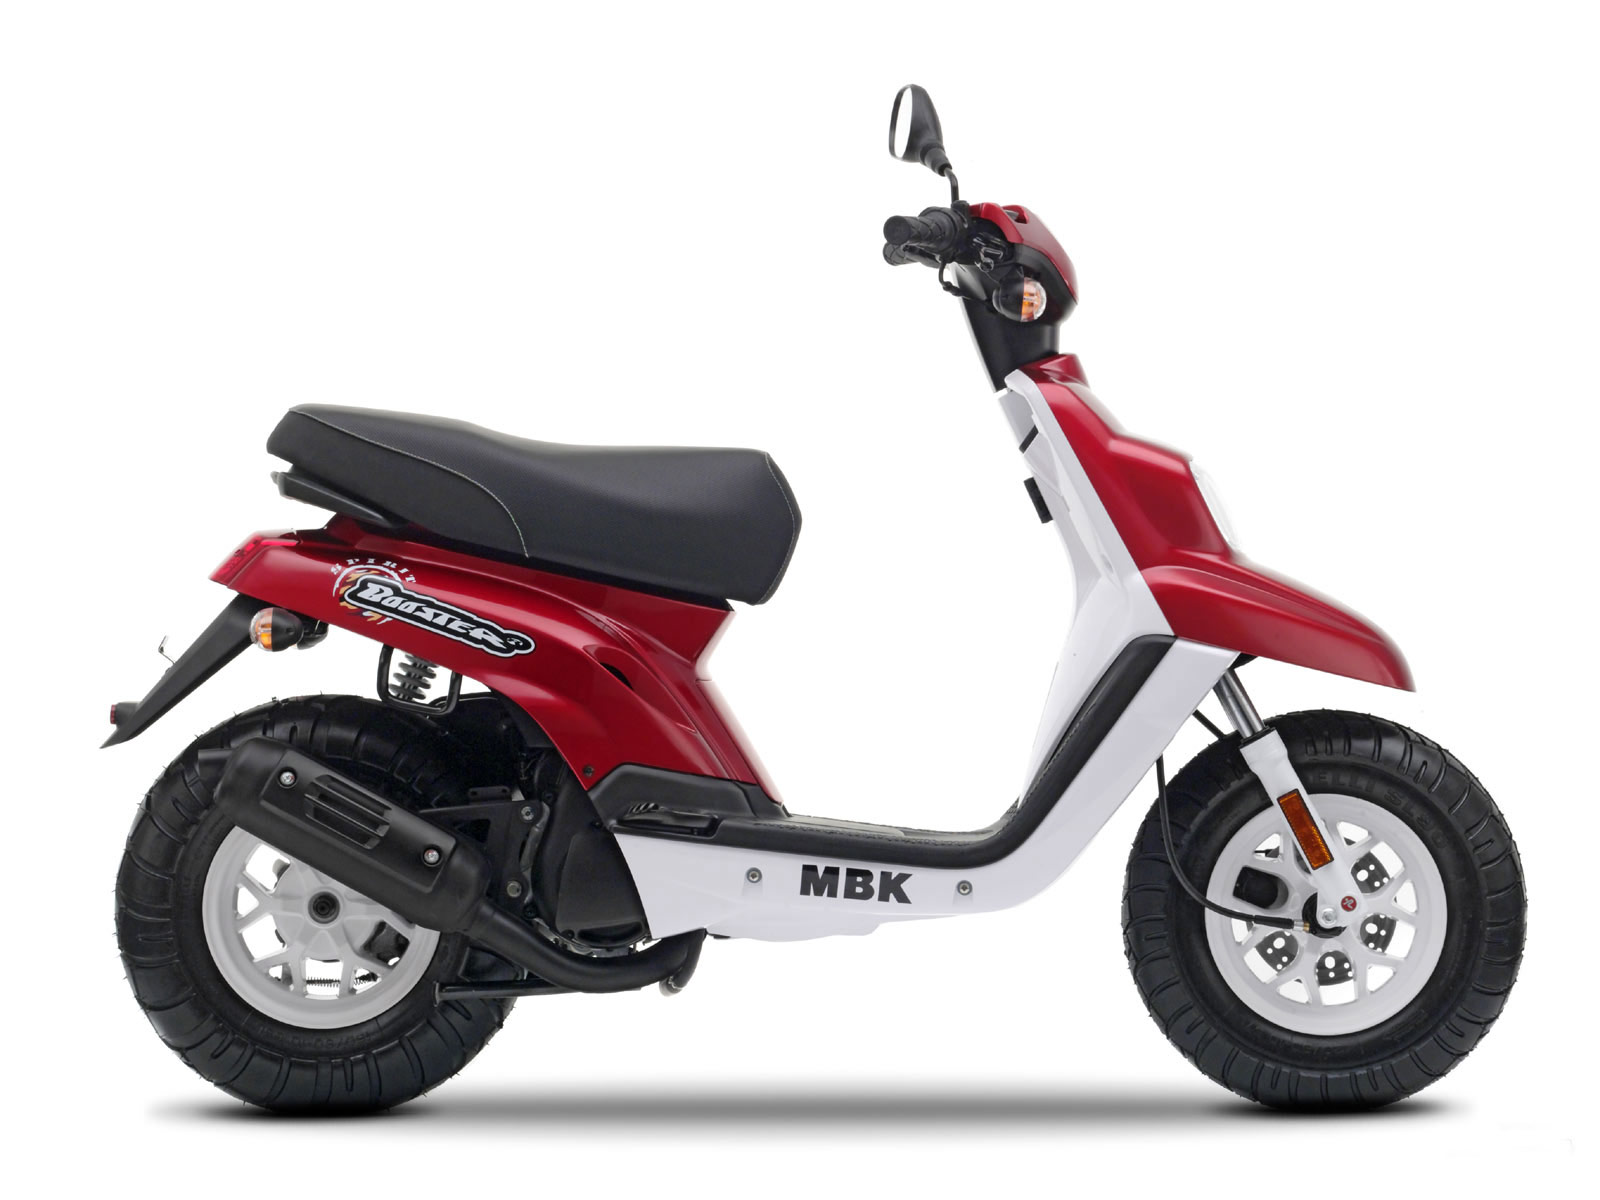 Types Of Car Insurance Coverage >> 2008 MBK Booster Scooter picture, insurance information